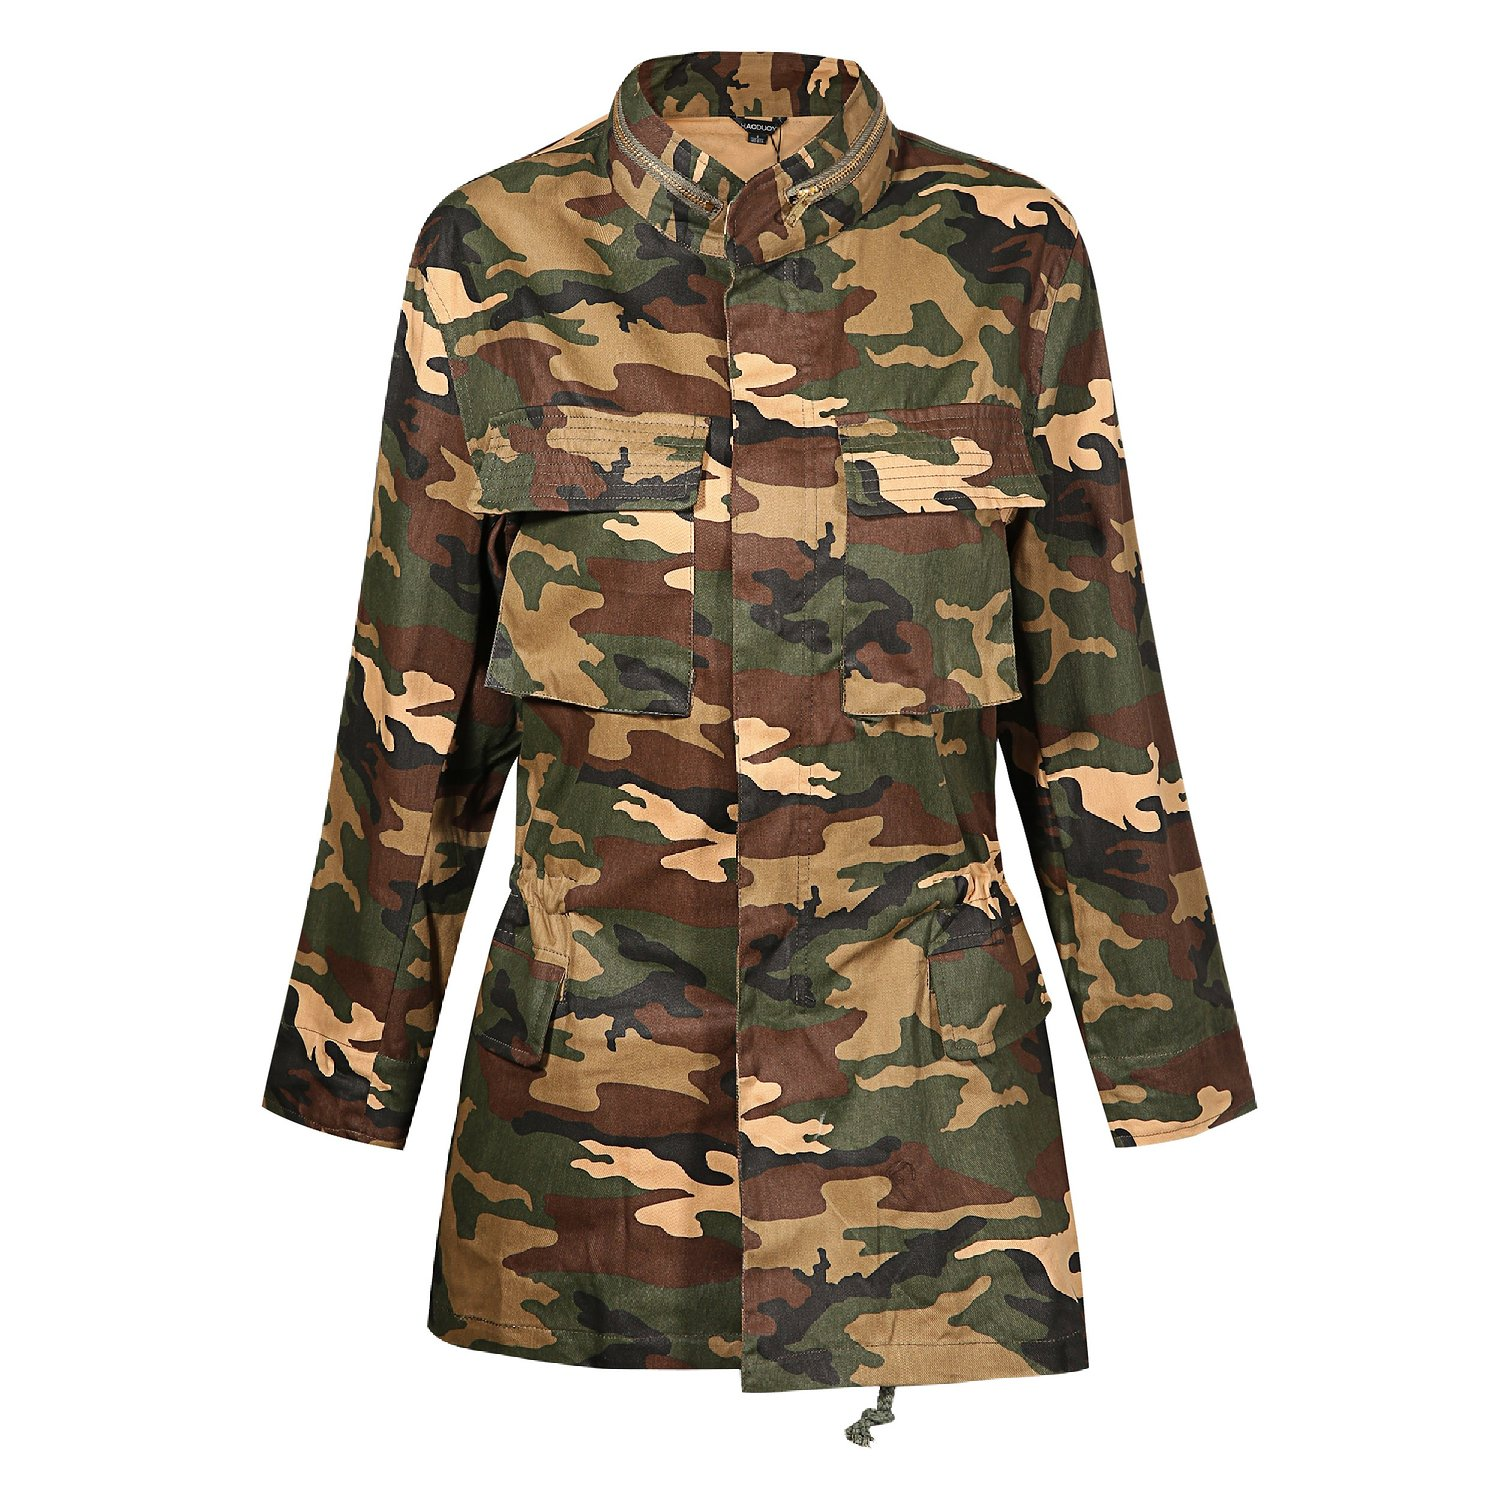 Haoduoyi Womens Loose Camouflage Coats Disposition Outwear Jackets At Amazon Womenu0026#39;s Coats Shop